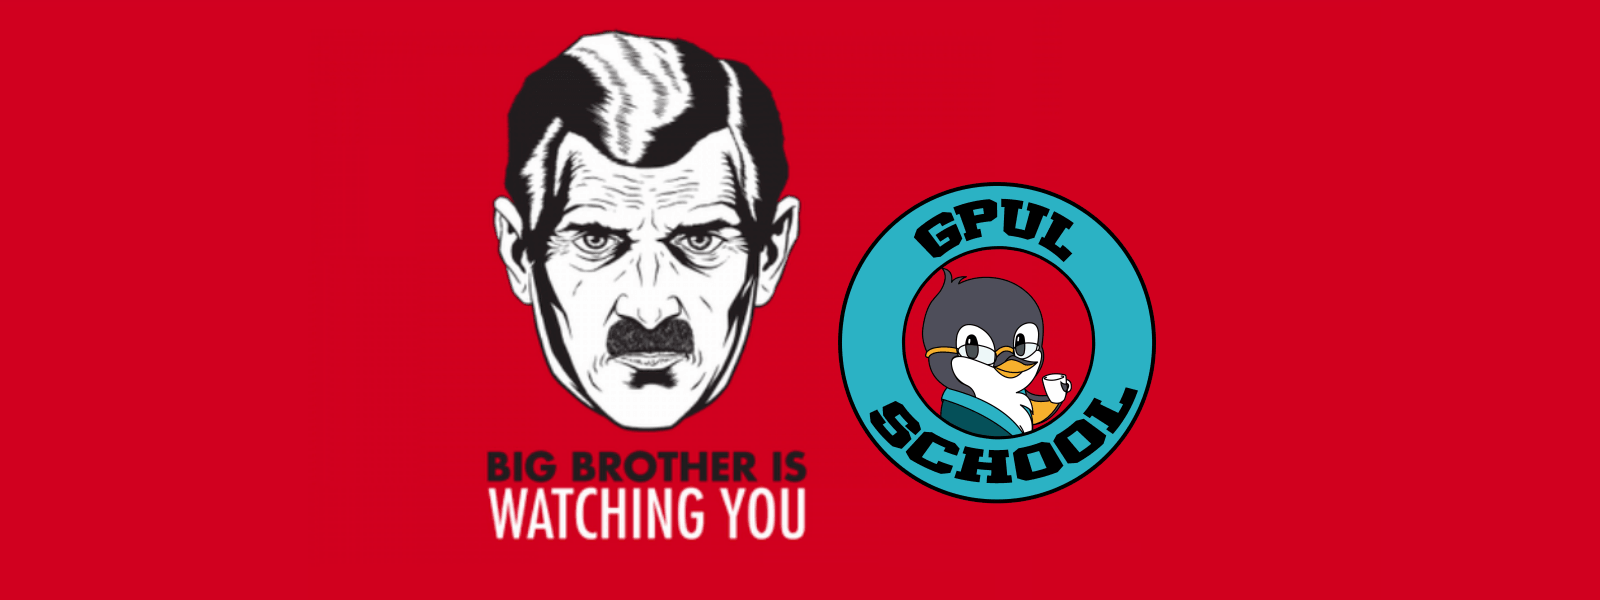 portada. Big brother is watching you, logo gpul school